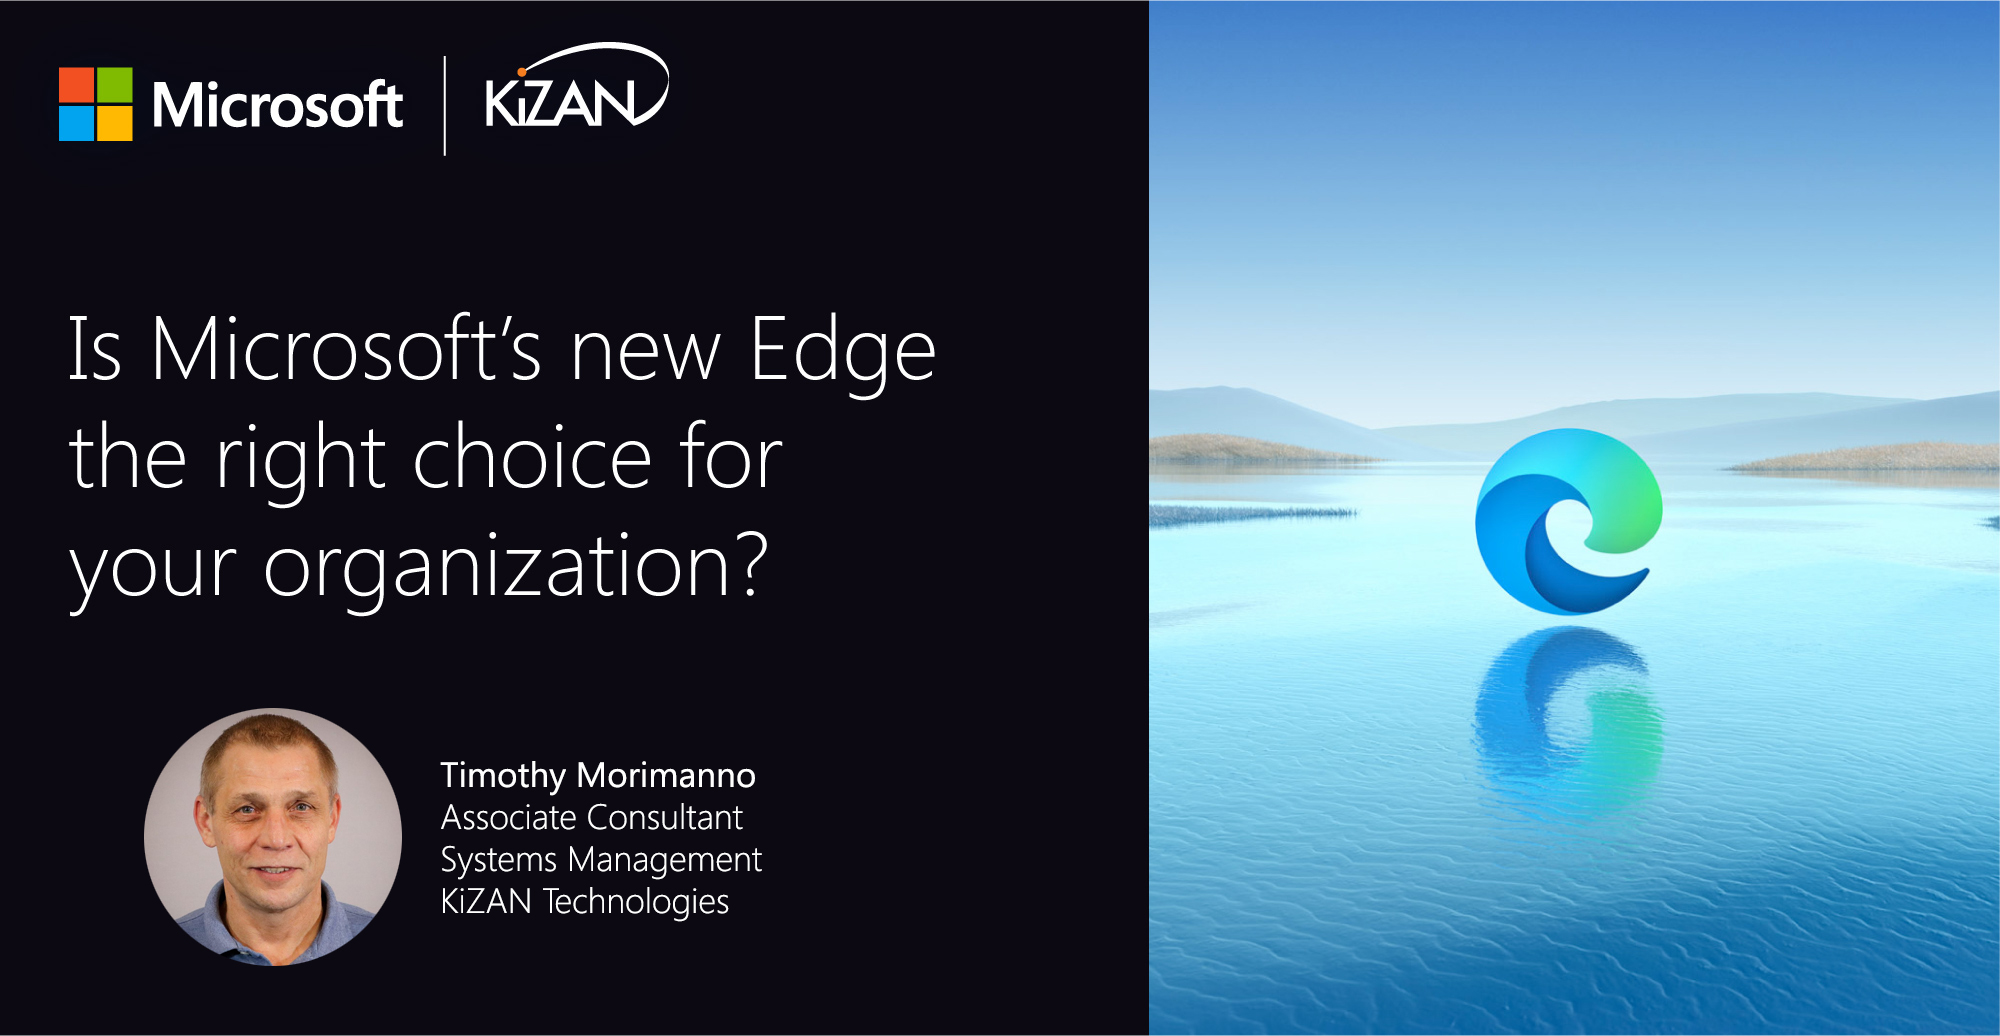 Is Microsoft's new Edge the right choice for your organization?